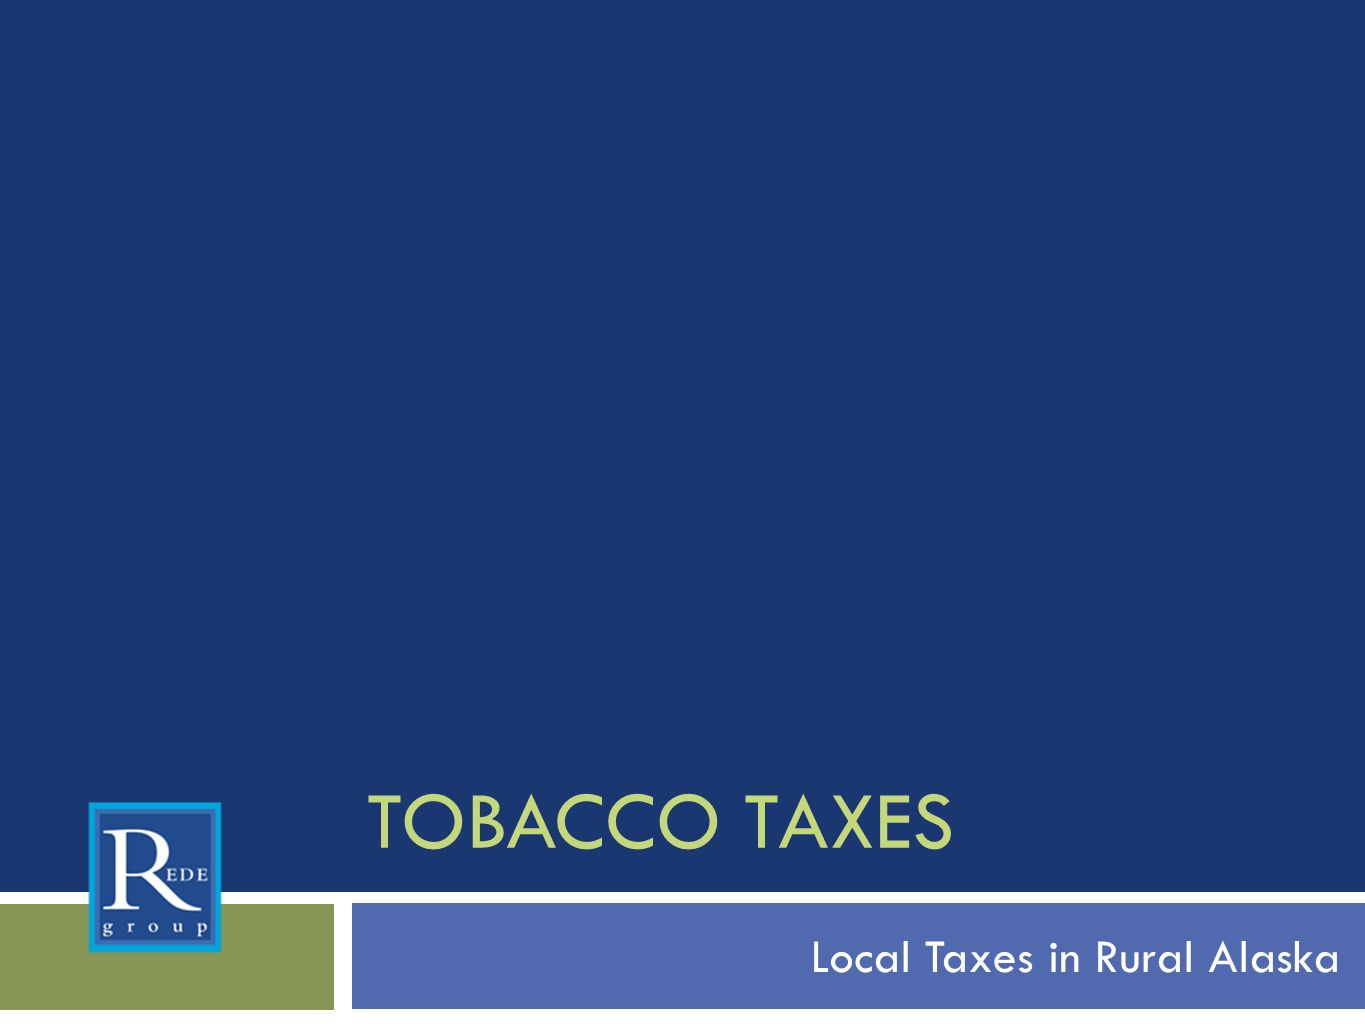 TOBACCO TAXES Local Taxes in Rural Alaska